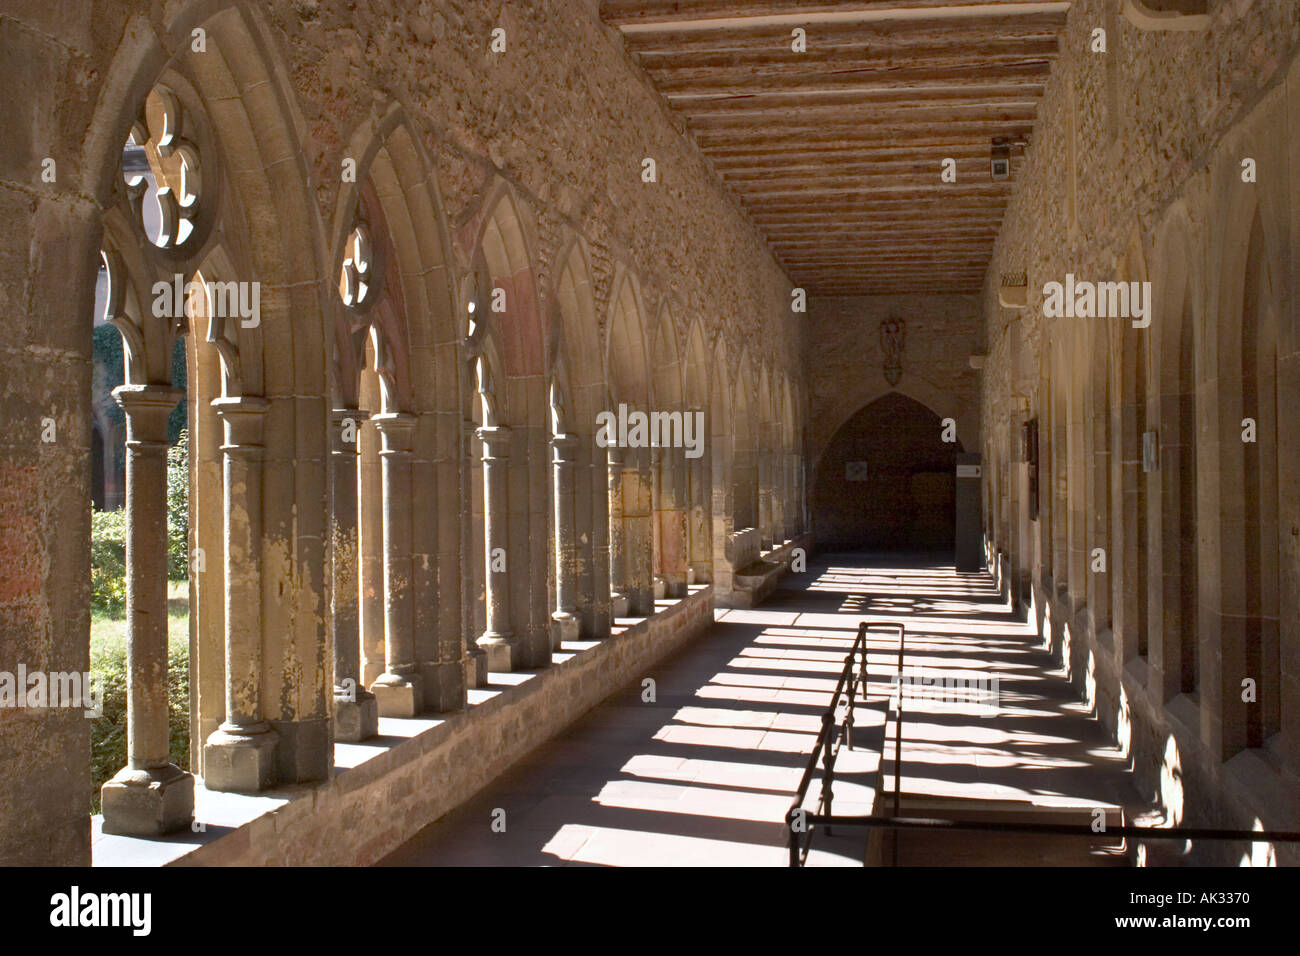 Cloisters in  the Musee d' Unterlinden, Colmar, Alsace, France Stock Photo